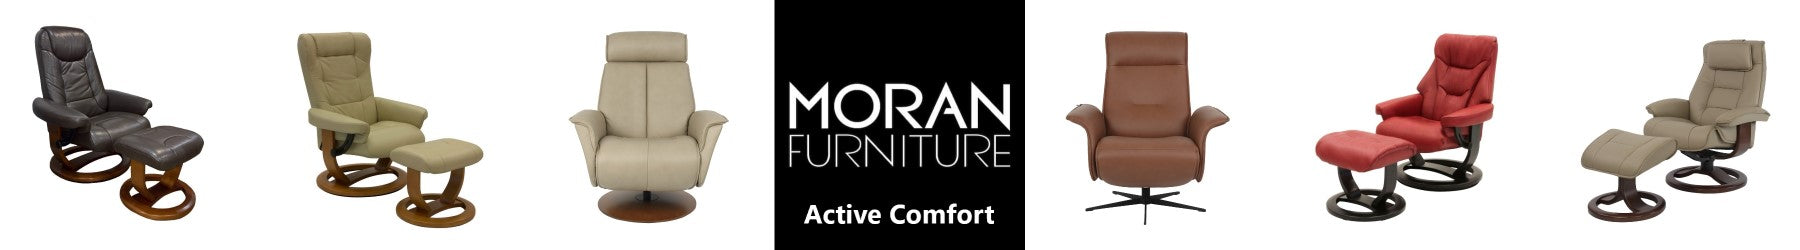 Moran Fjord Recliners and Active Comfort Chairs